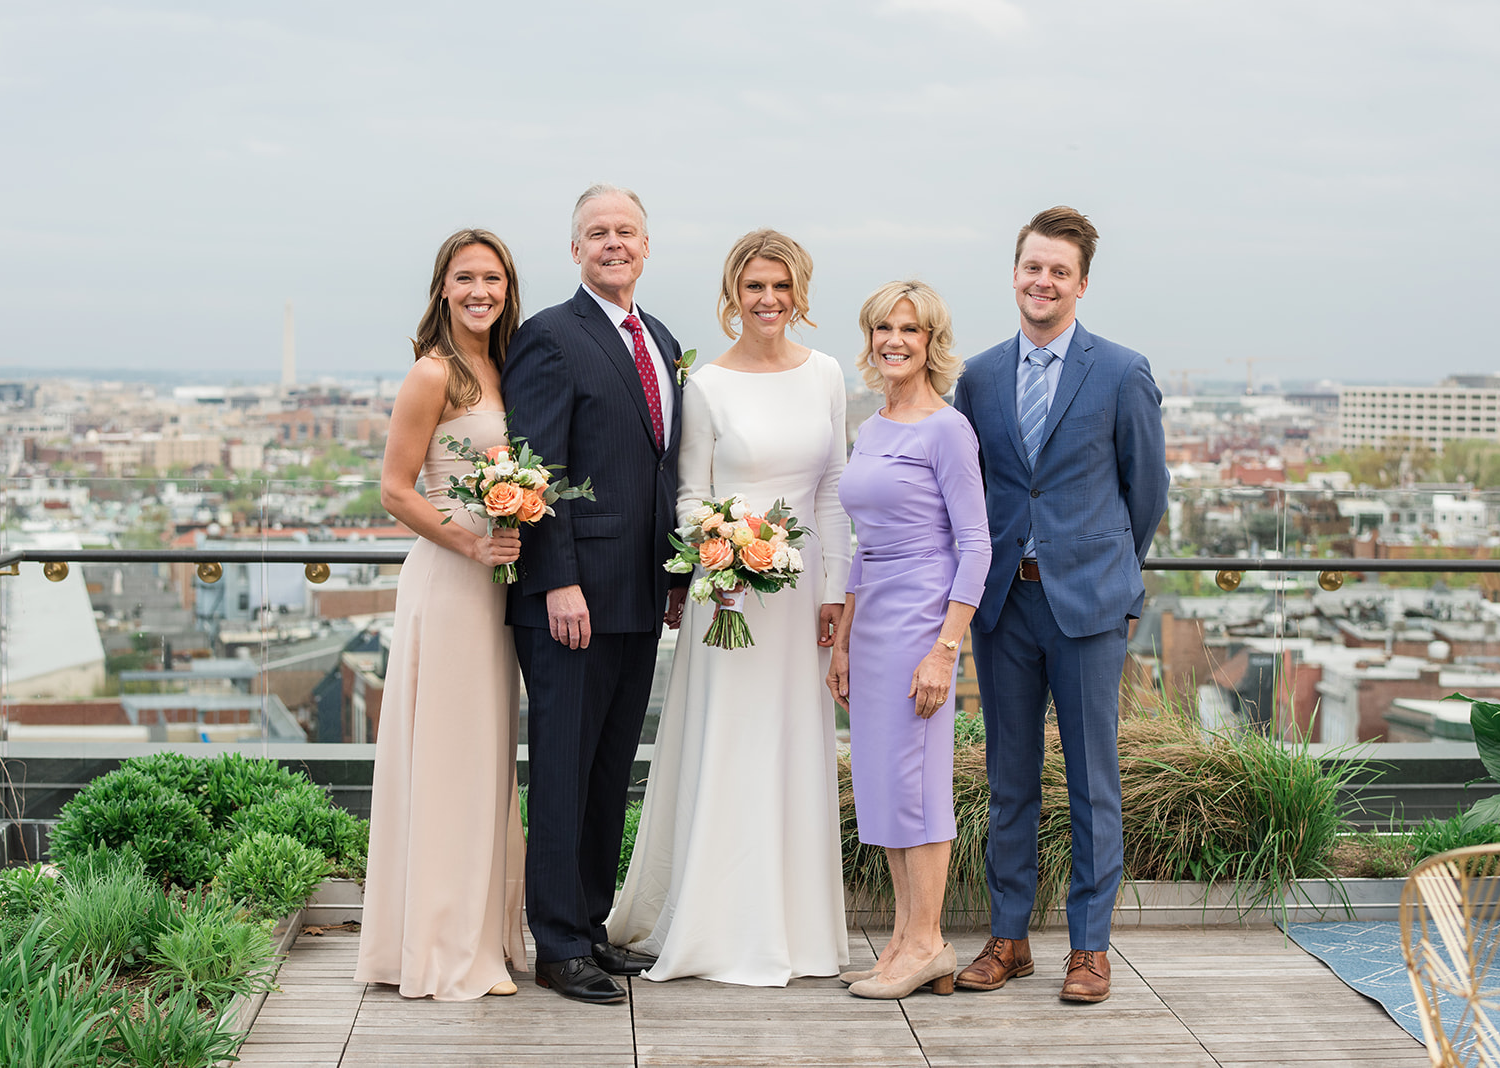 bride posing with her family on her wedding day on the rooftop of the Line hotel in Washington